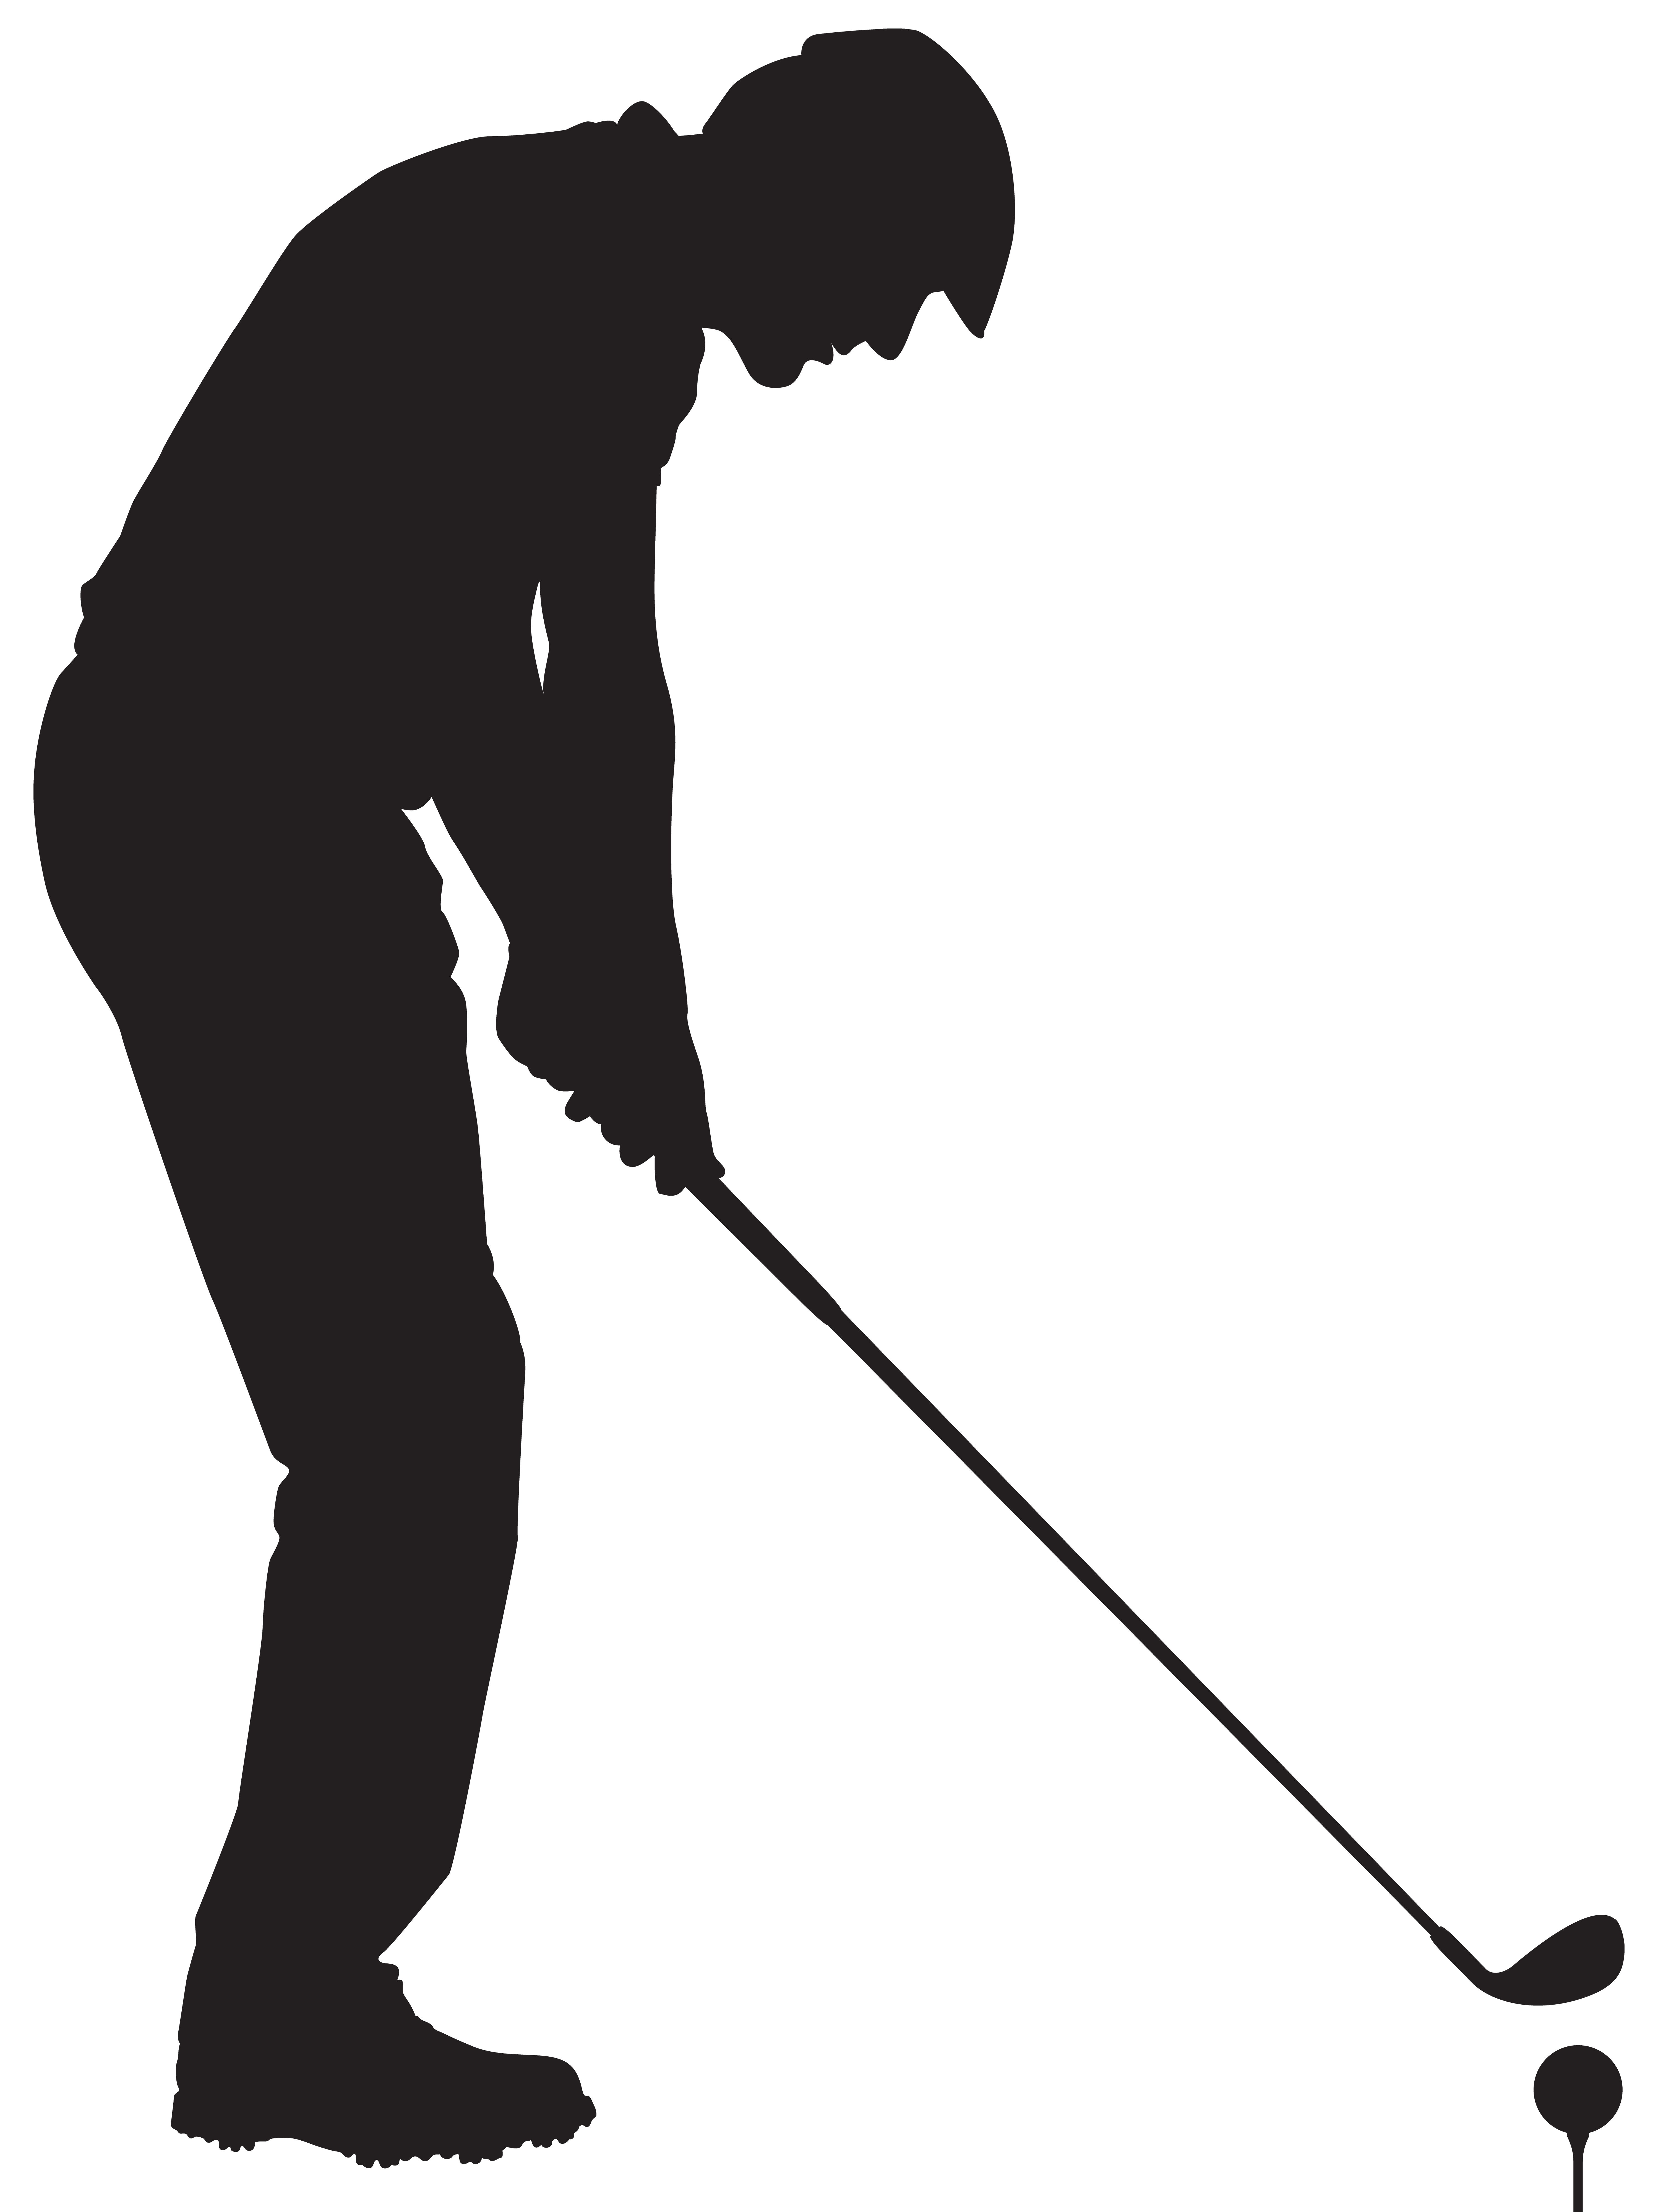 Man clipart golf. Playing silhouette png clip